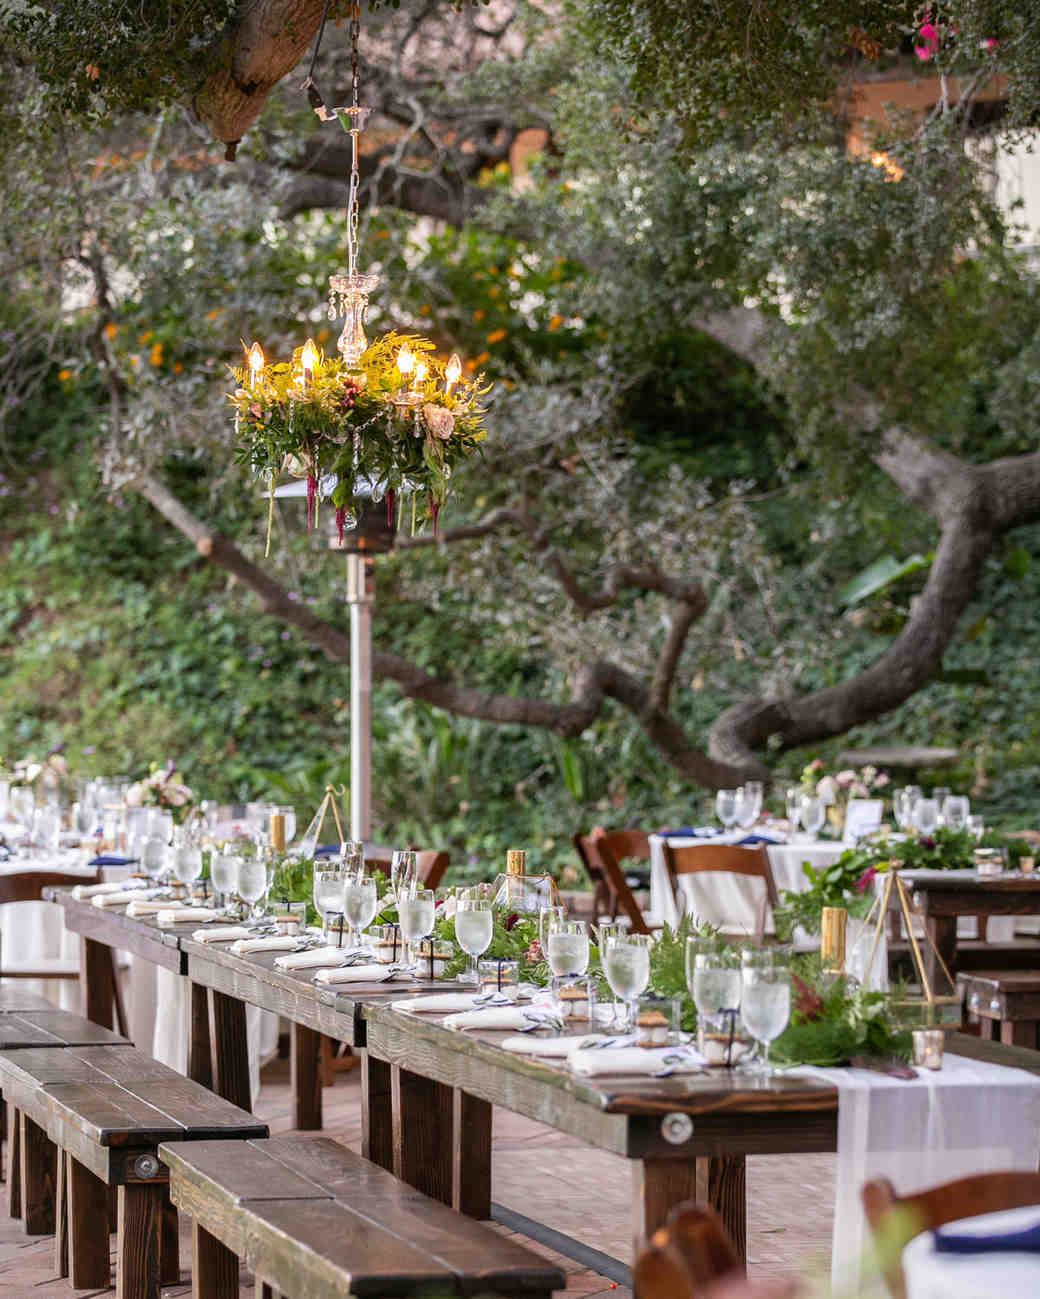 small hanging outdoor chandelier with greenery accents